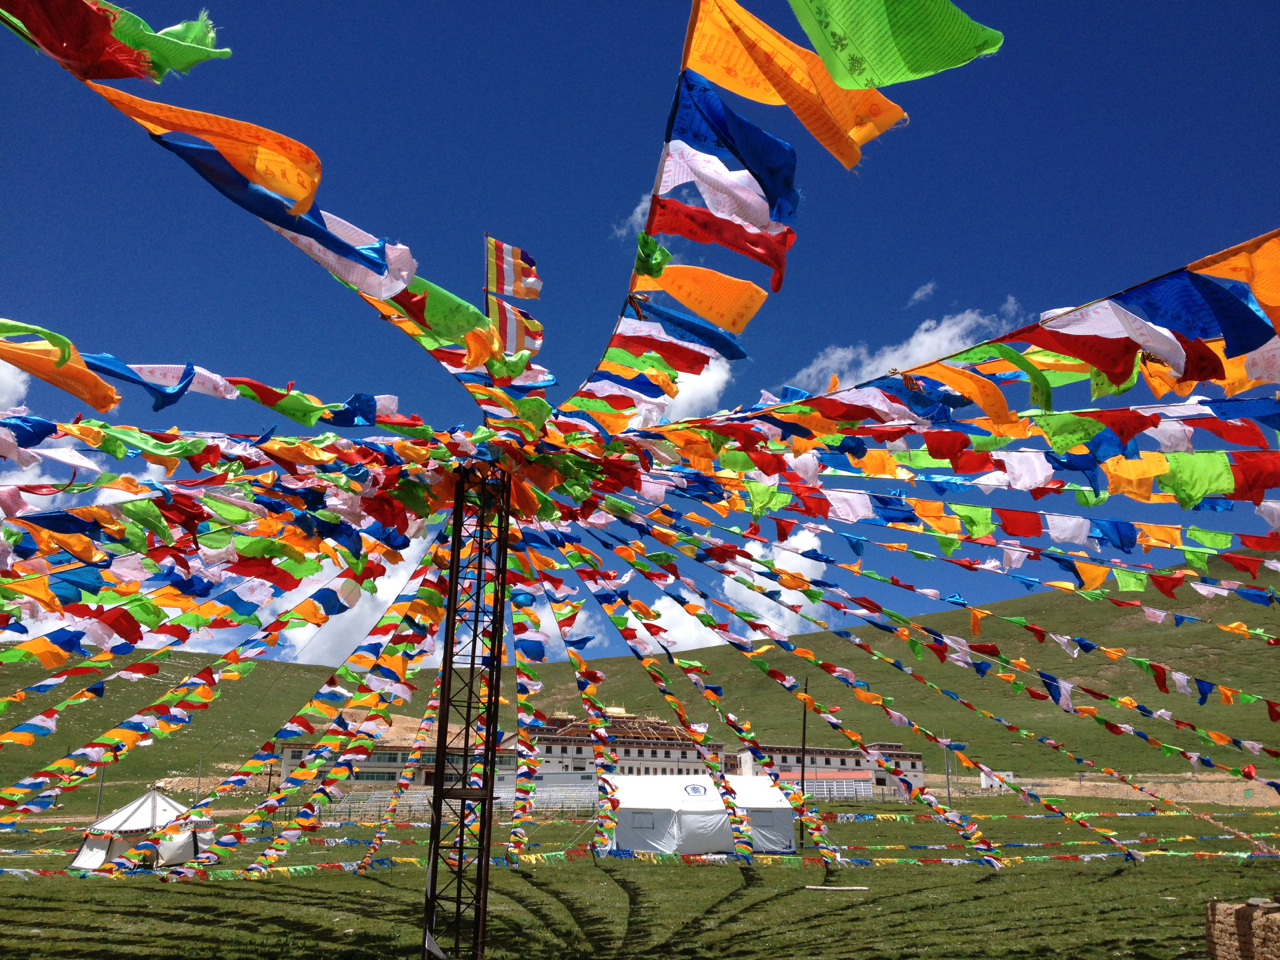 Prayer flags raised to welcome guests to Ayang Gompa, Eastern Tibet